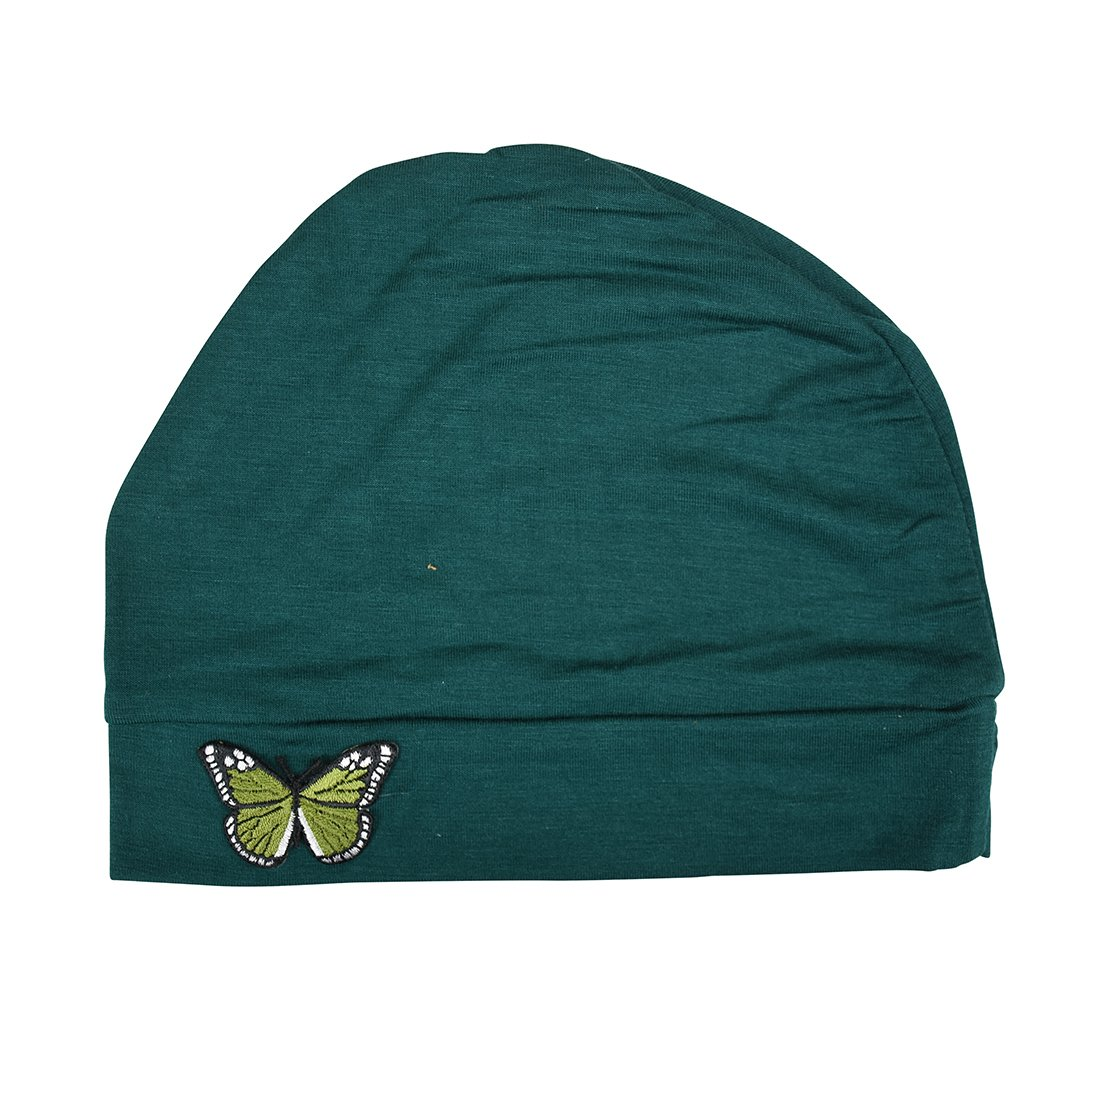 Landana Headscarves Ladies Chemo Hat with Green Butterfly Bling lduc-black-a3green